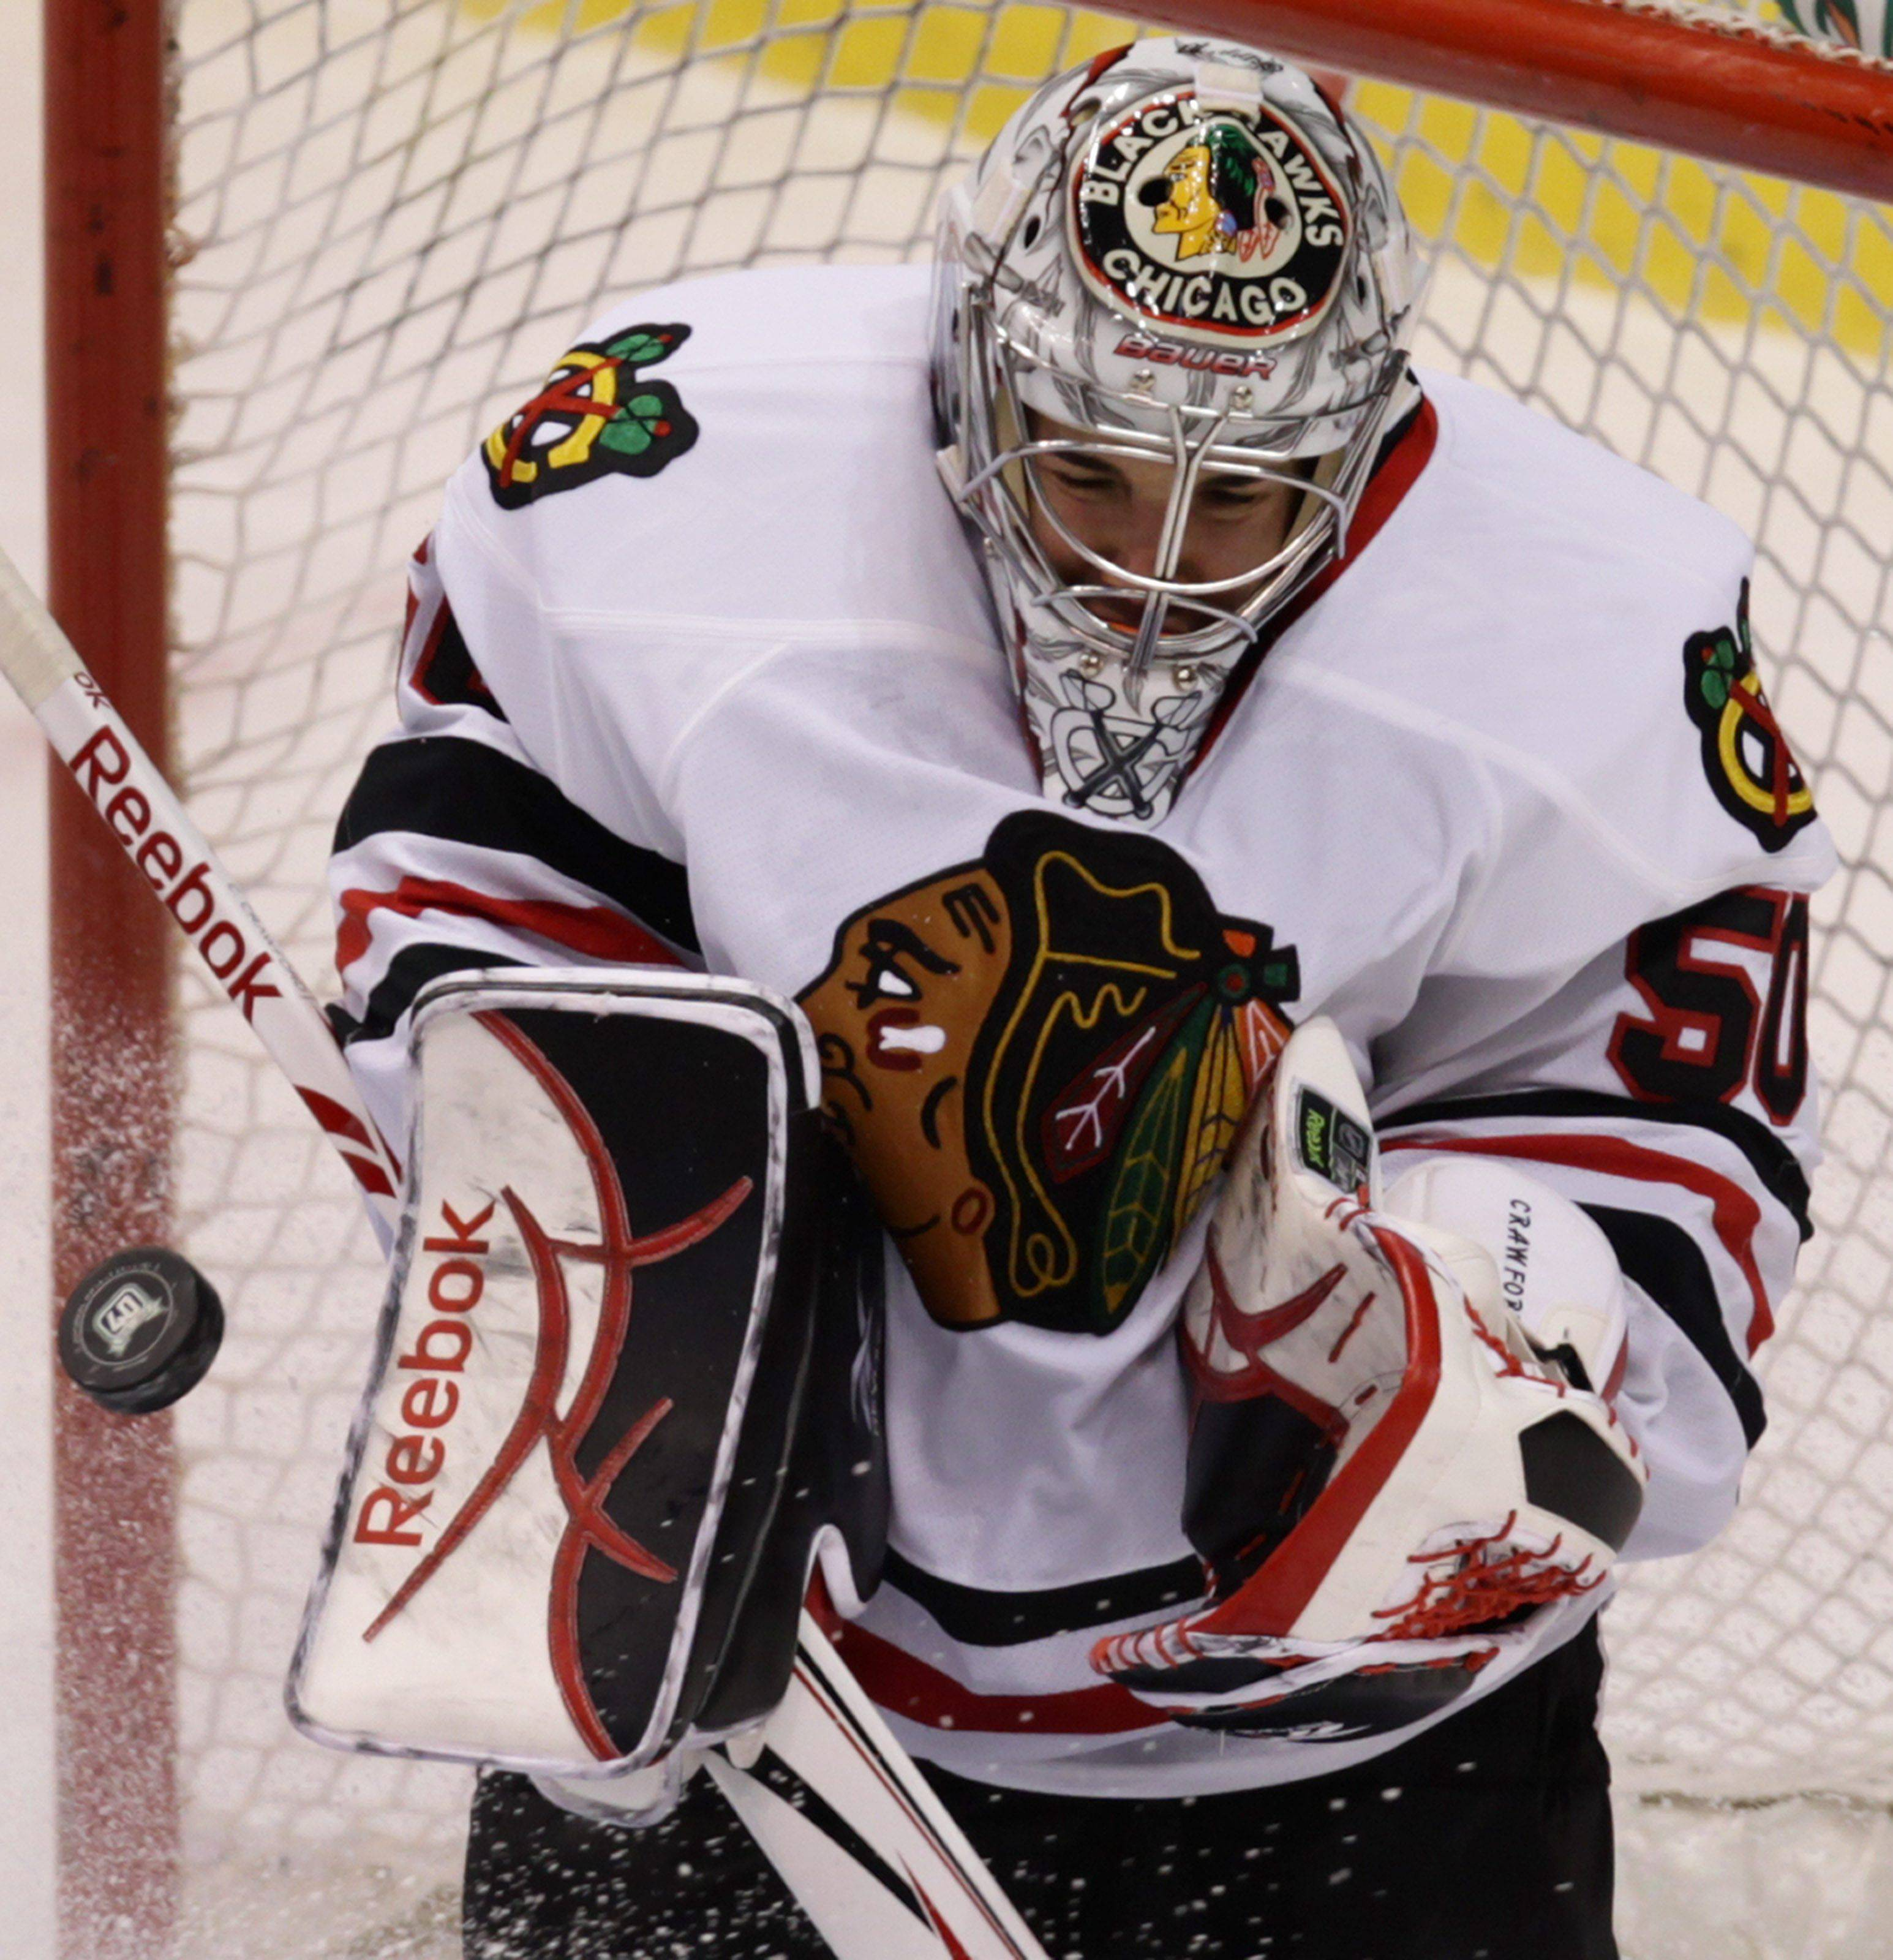 Corey Crawford makes a save in Saturday's 7-1 Blackhawks victory at Vancouver.